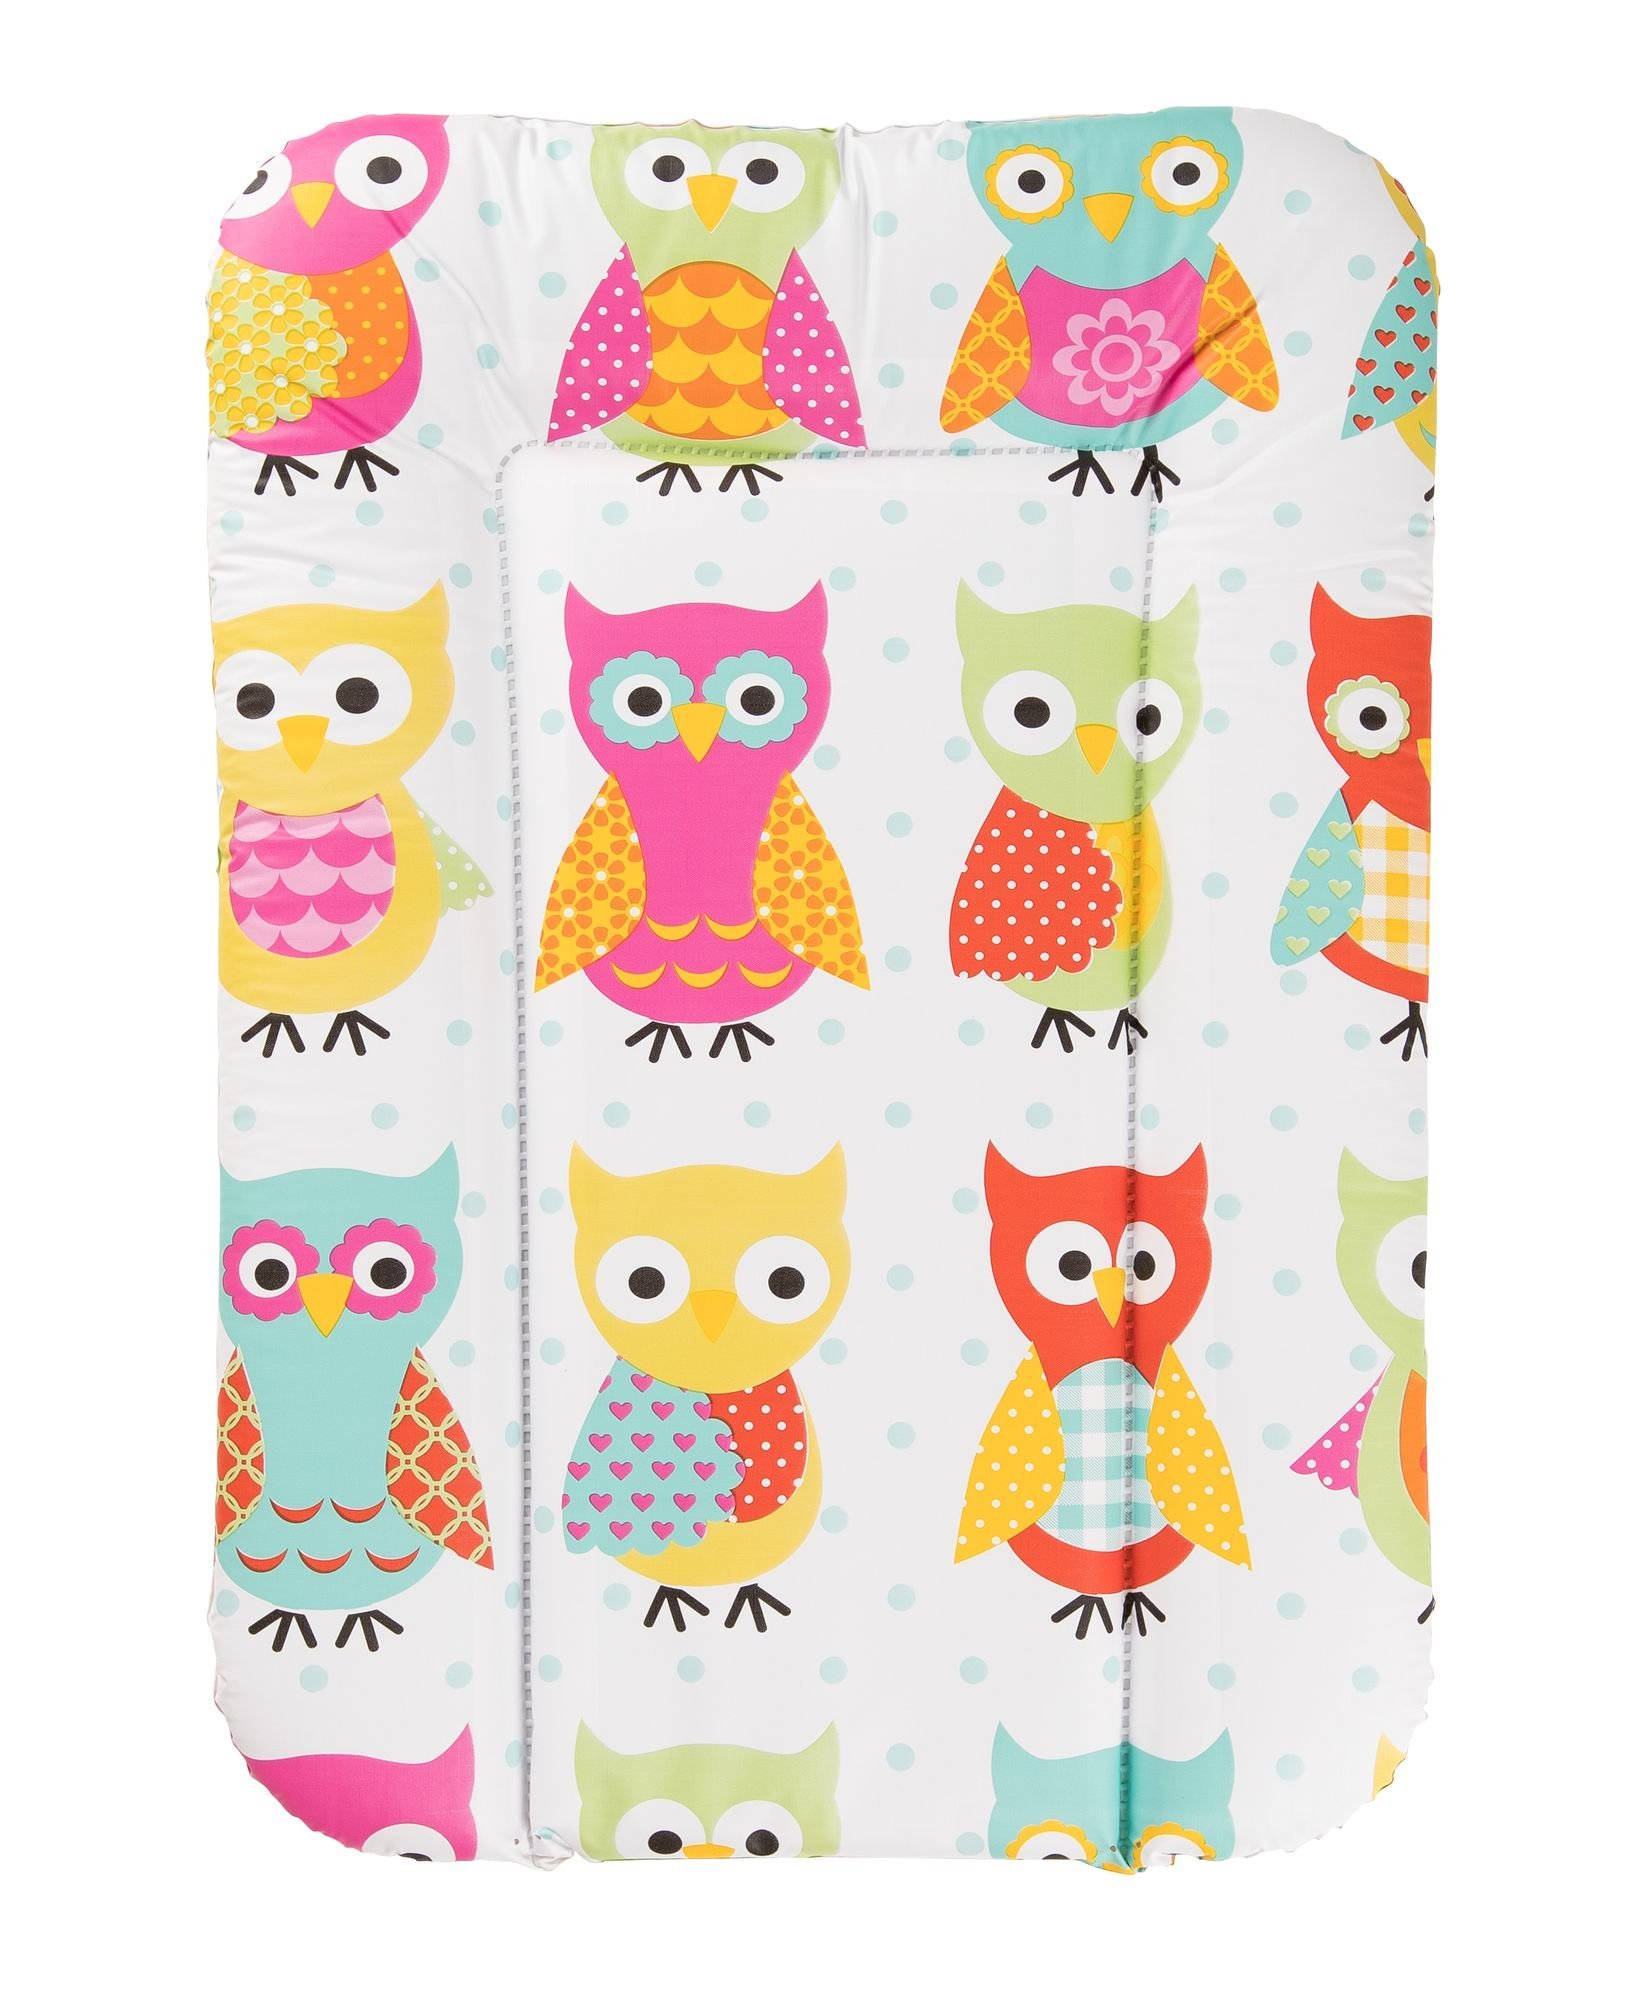 Geuther - Nappy Changing pad 5832, Owls  Colourful, modern owl design Soft, waterproof and wipe-clean Comfortable raised edge & head protection 1